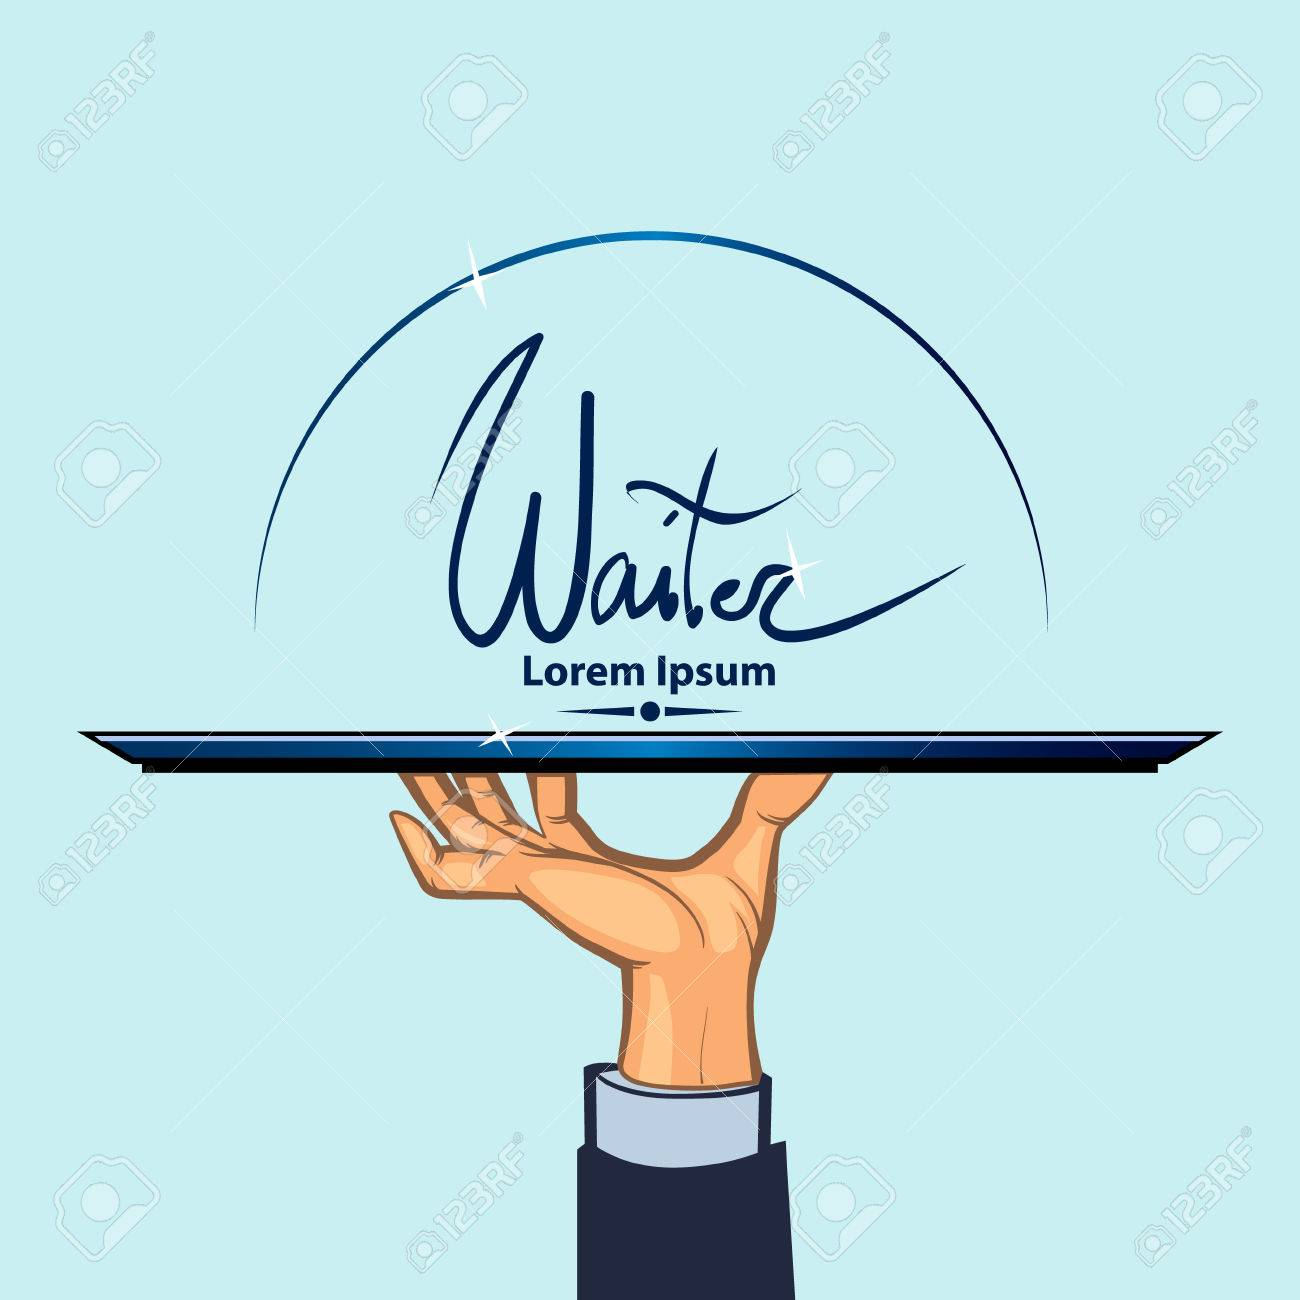 waiter, human hand with a tray, simple color illustration - 51942188